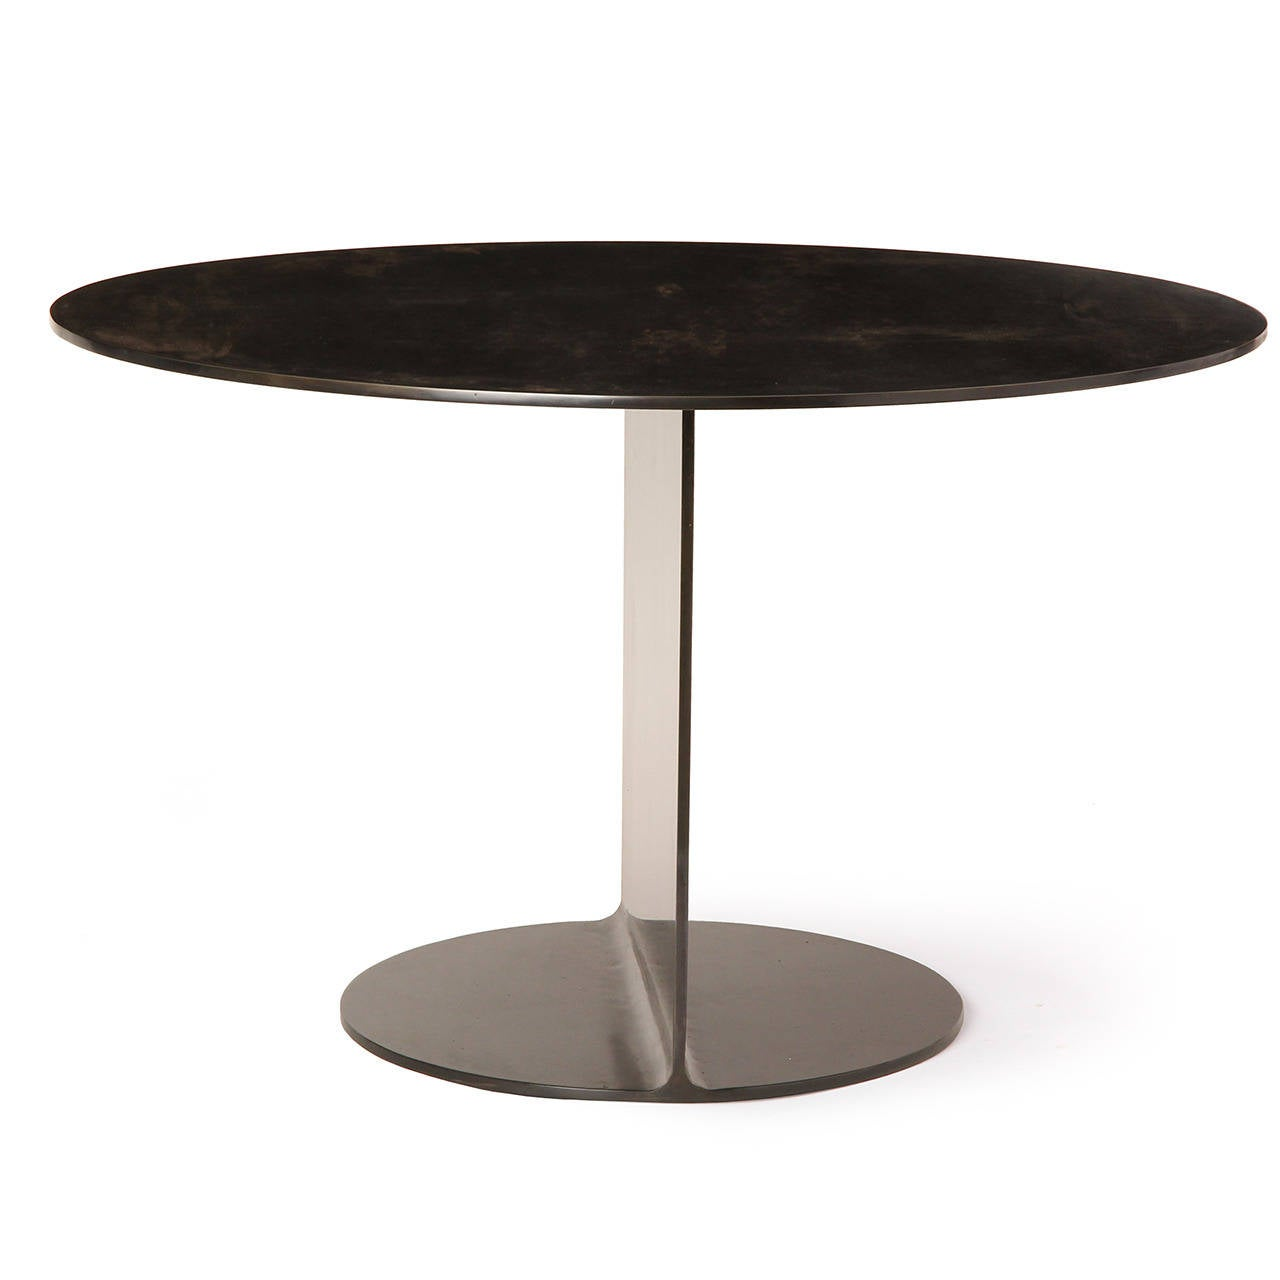 WYETH Original I Beam Gong Table in Blackened Steel For Sale 3